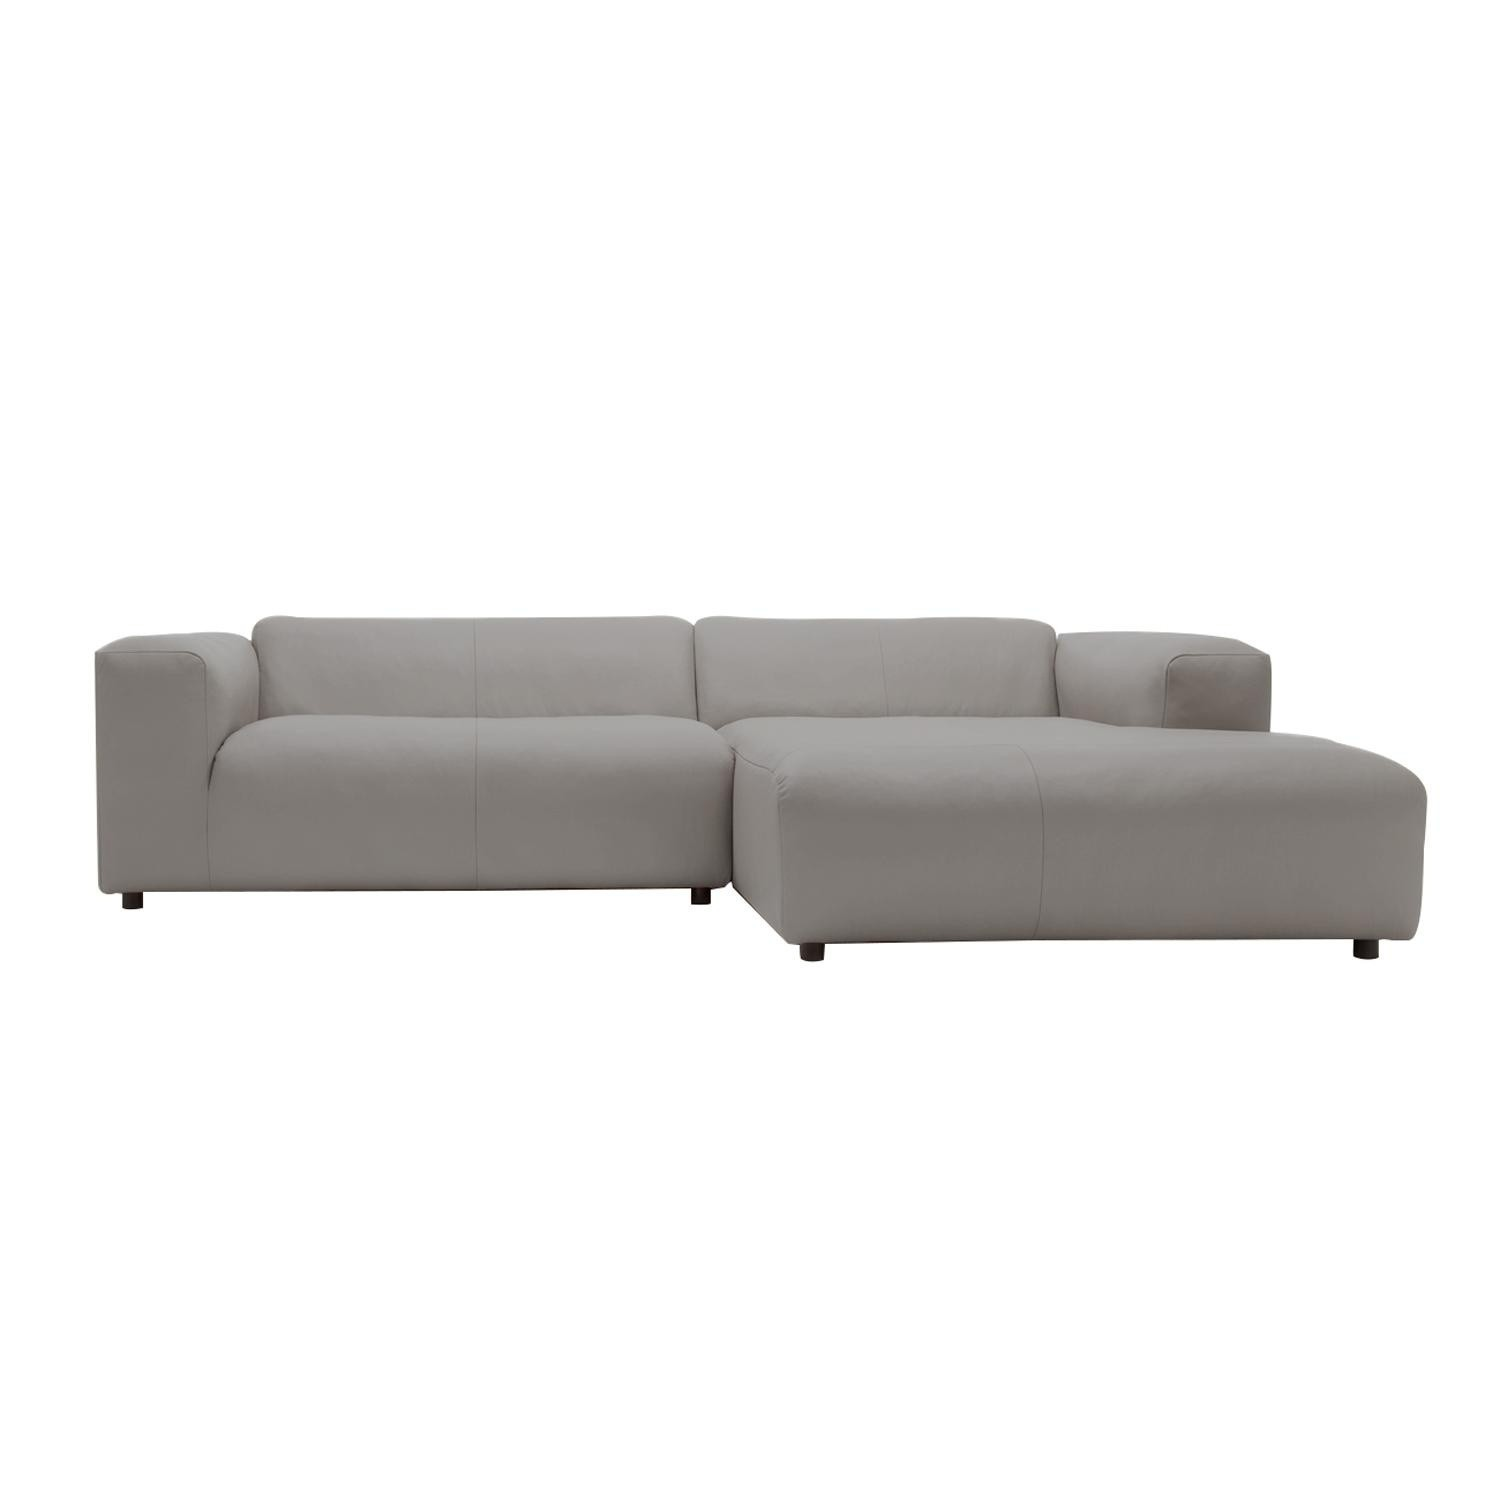 Freistil Rolf Benz Freistil 187 Lounge Sofa 260x185cm Ambientedirect